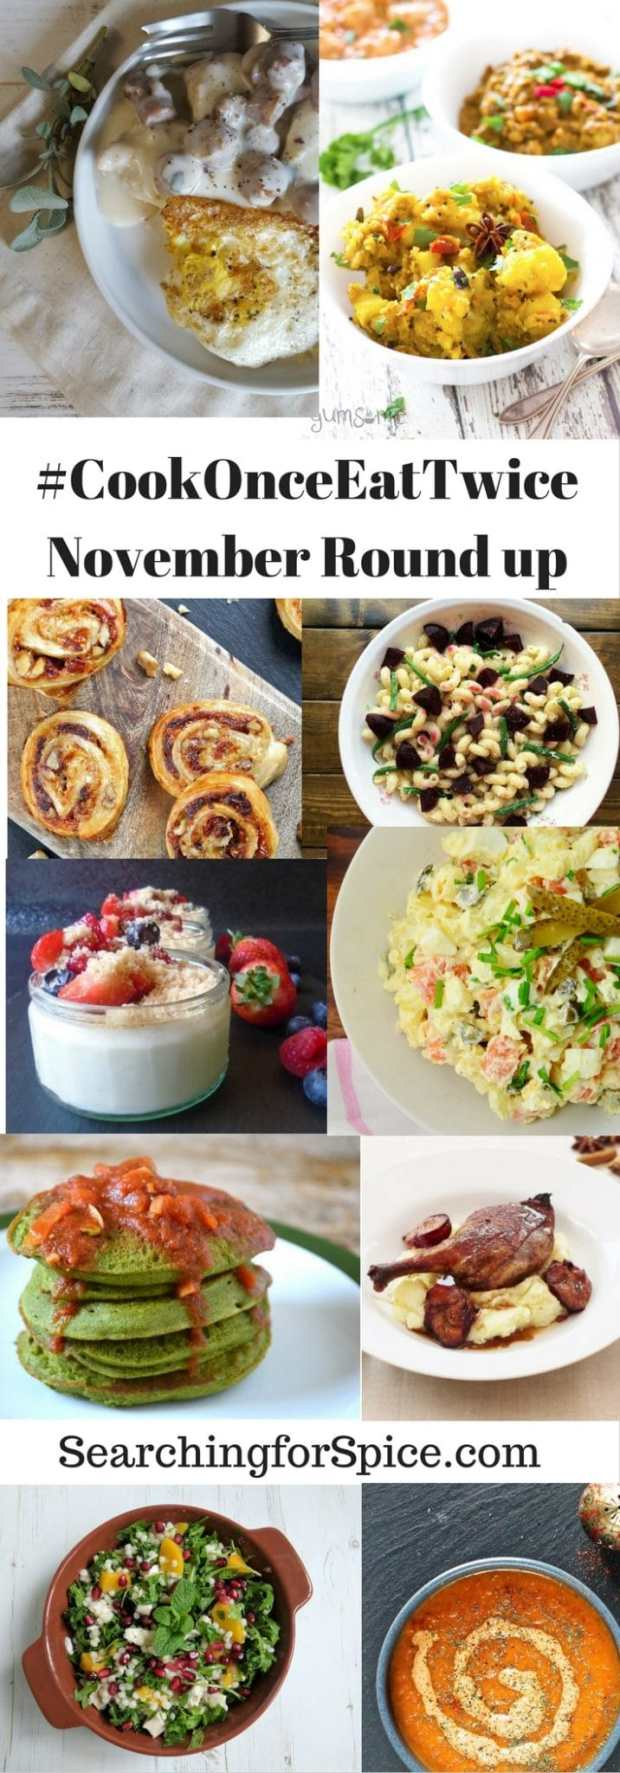 #cookOnceEatTwice November Round Up